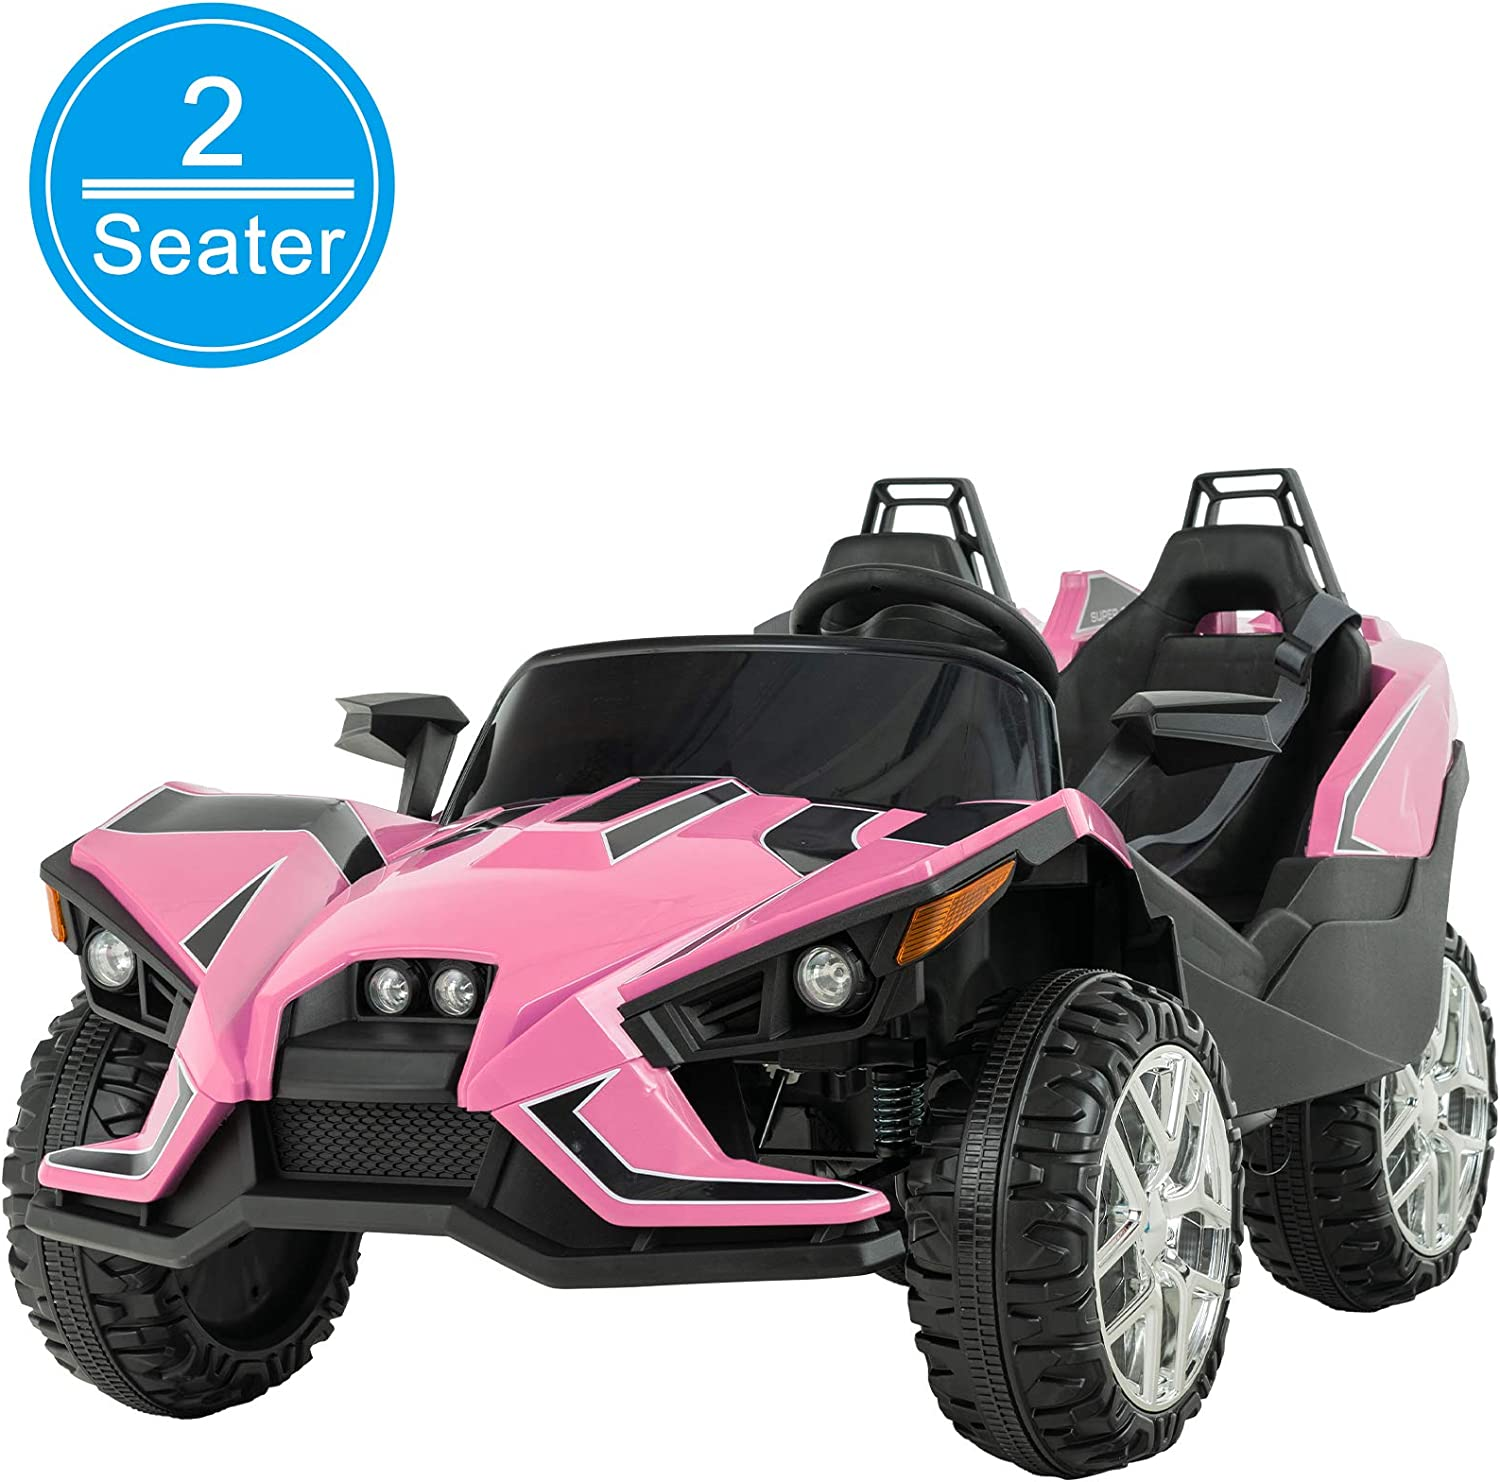 Amazon Com Uenjoy 2 Seats Kids Car 12v Ride On Racer Cars Battery Operated Electric Cars W 2 4g Remote Control Spring Suspension Wheels 4 Speeds Led Lights Music Bluetooth Aux Cord Usb Port Pink Toys Games